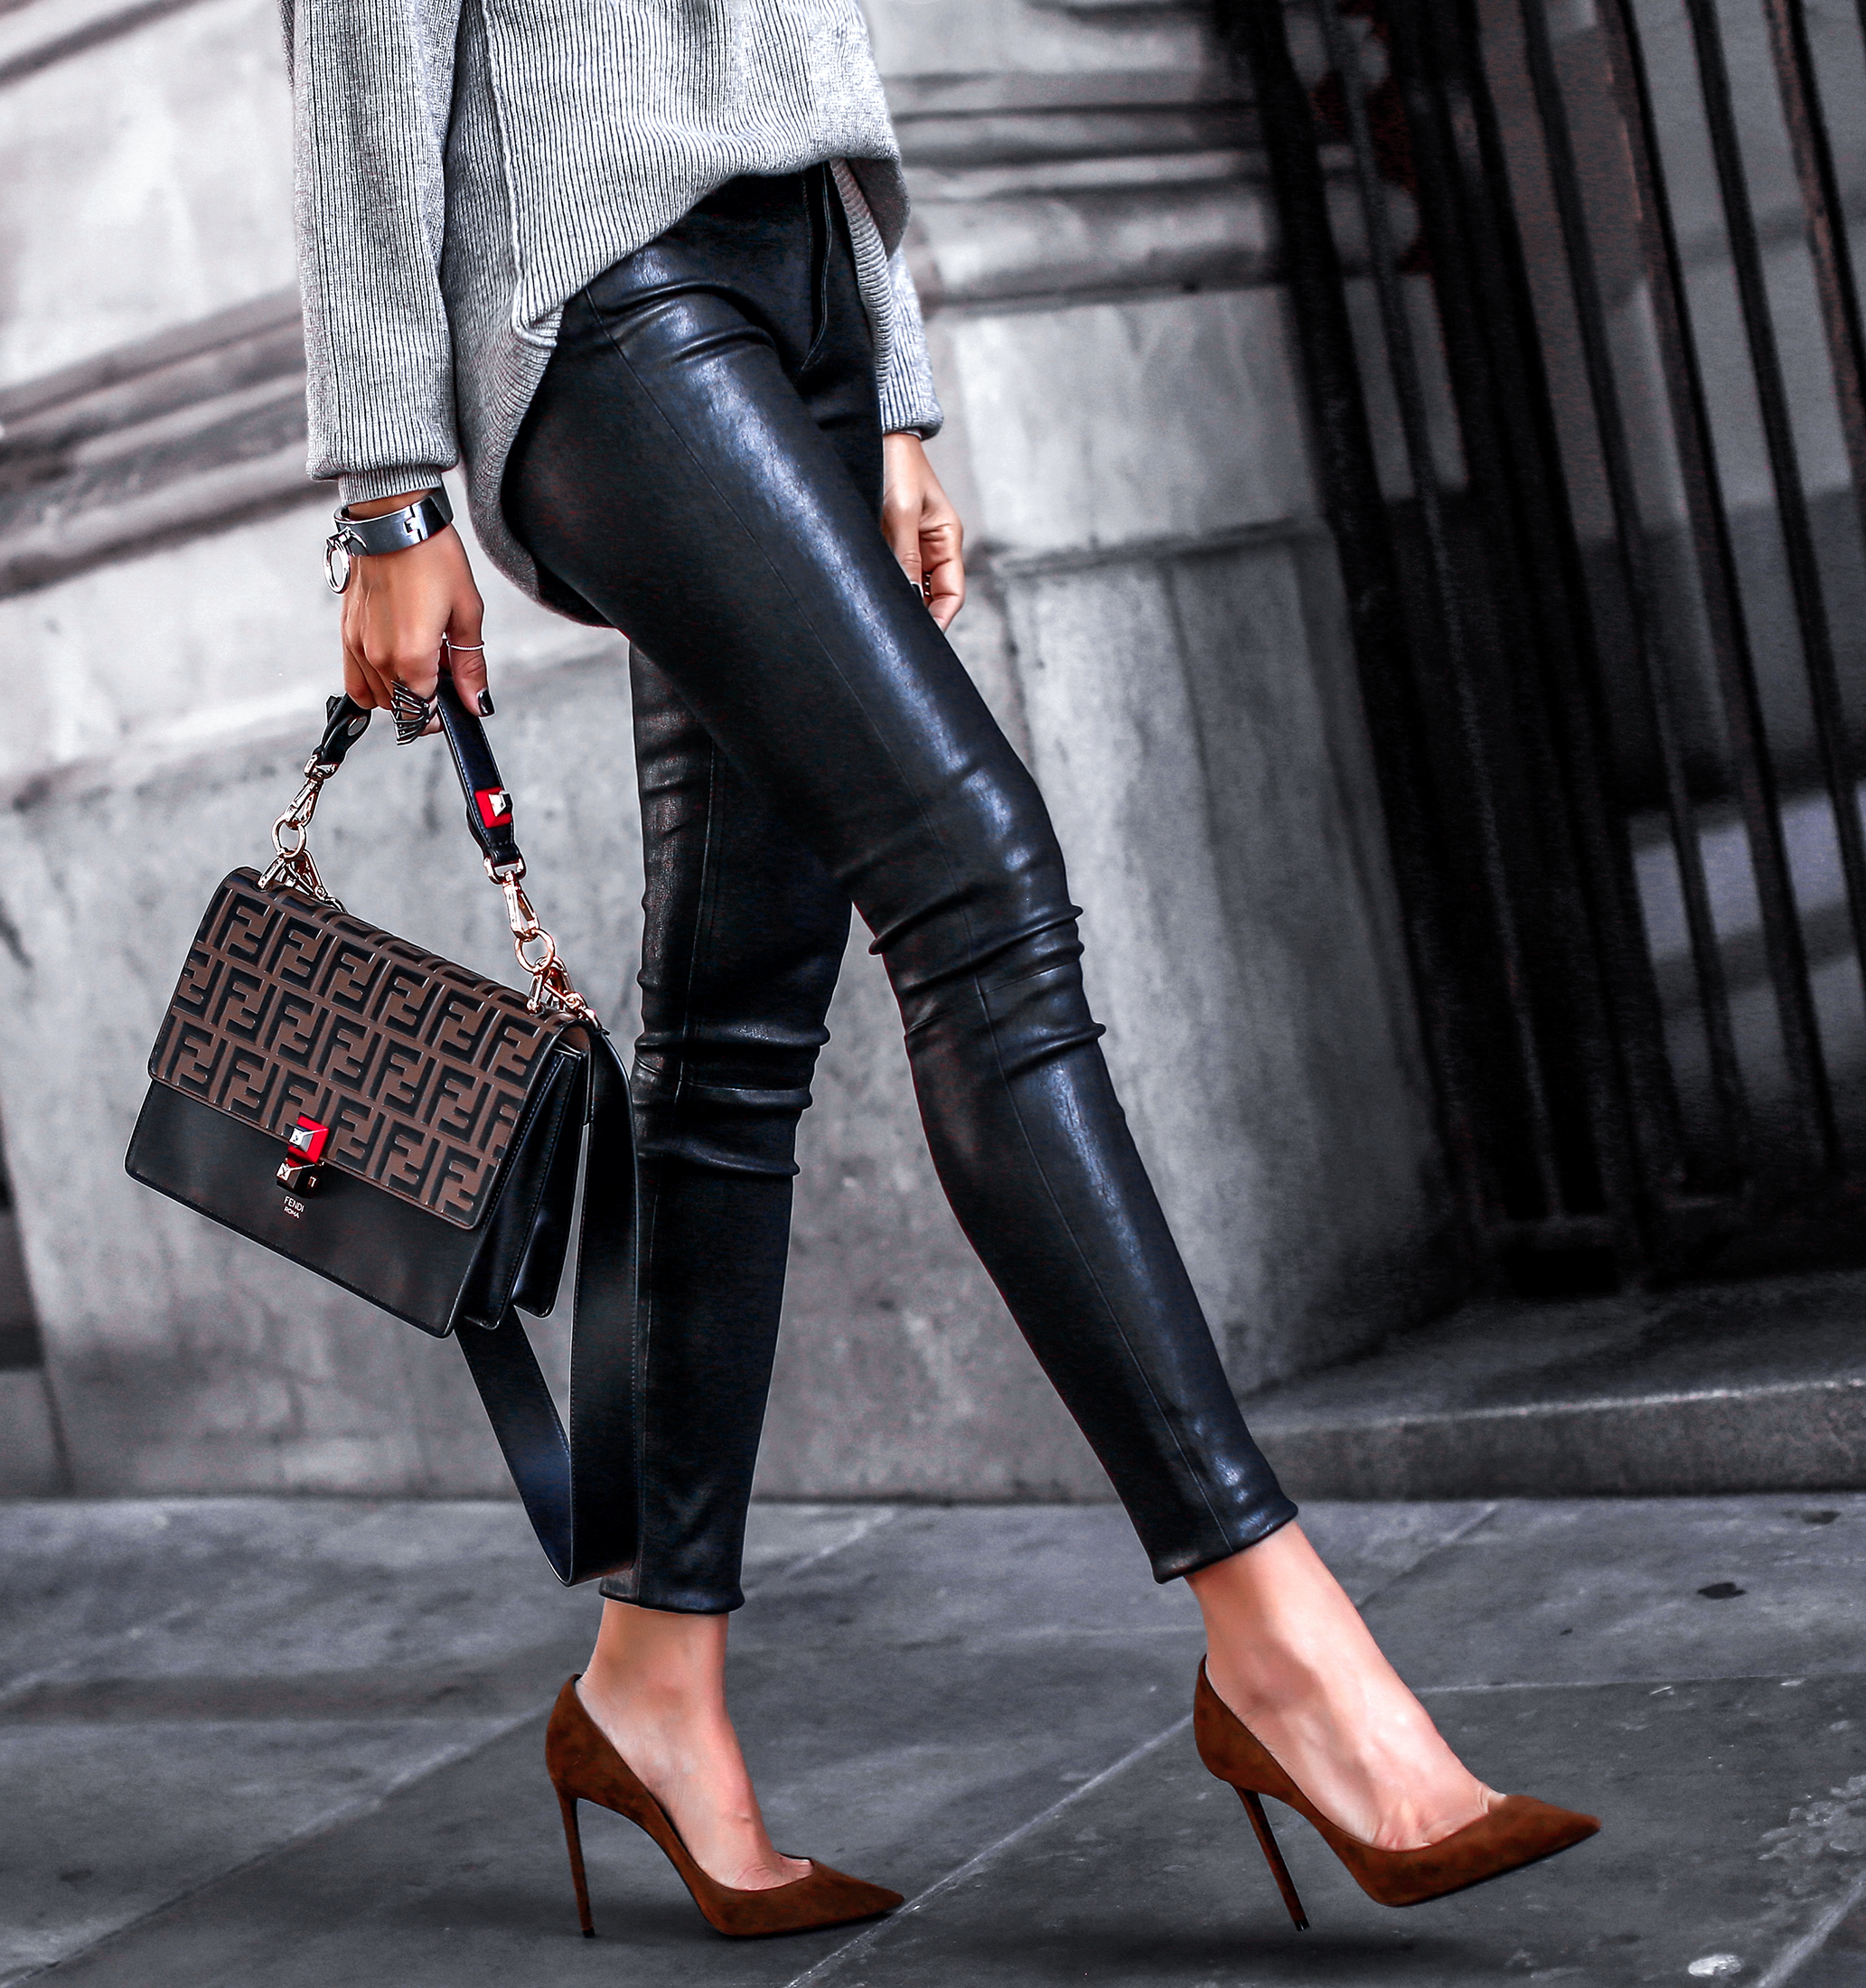 Woman Wearing Leather Pants and Free People Sweater Fendi Kan Bag